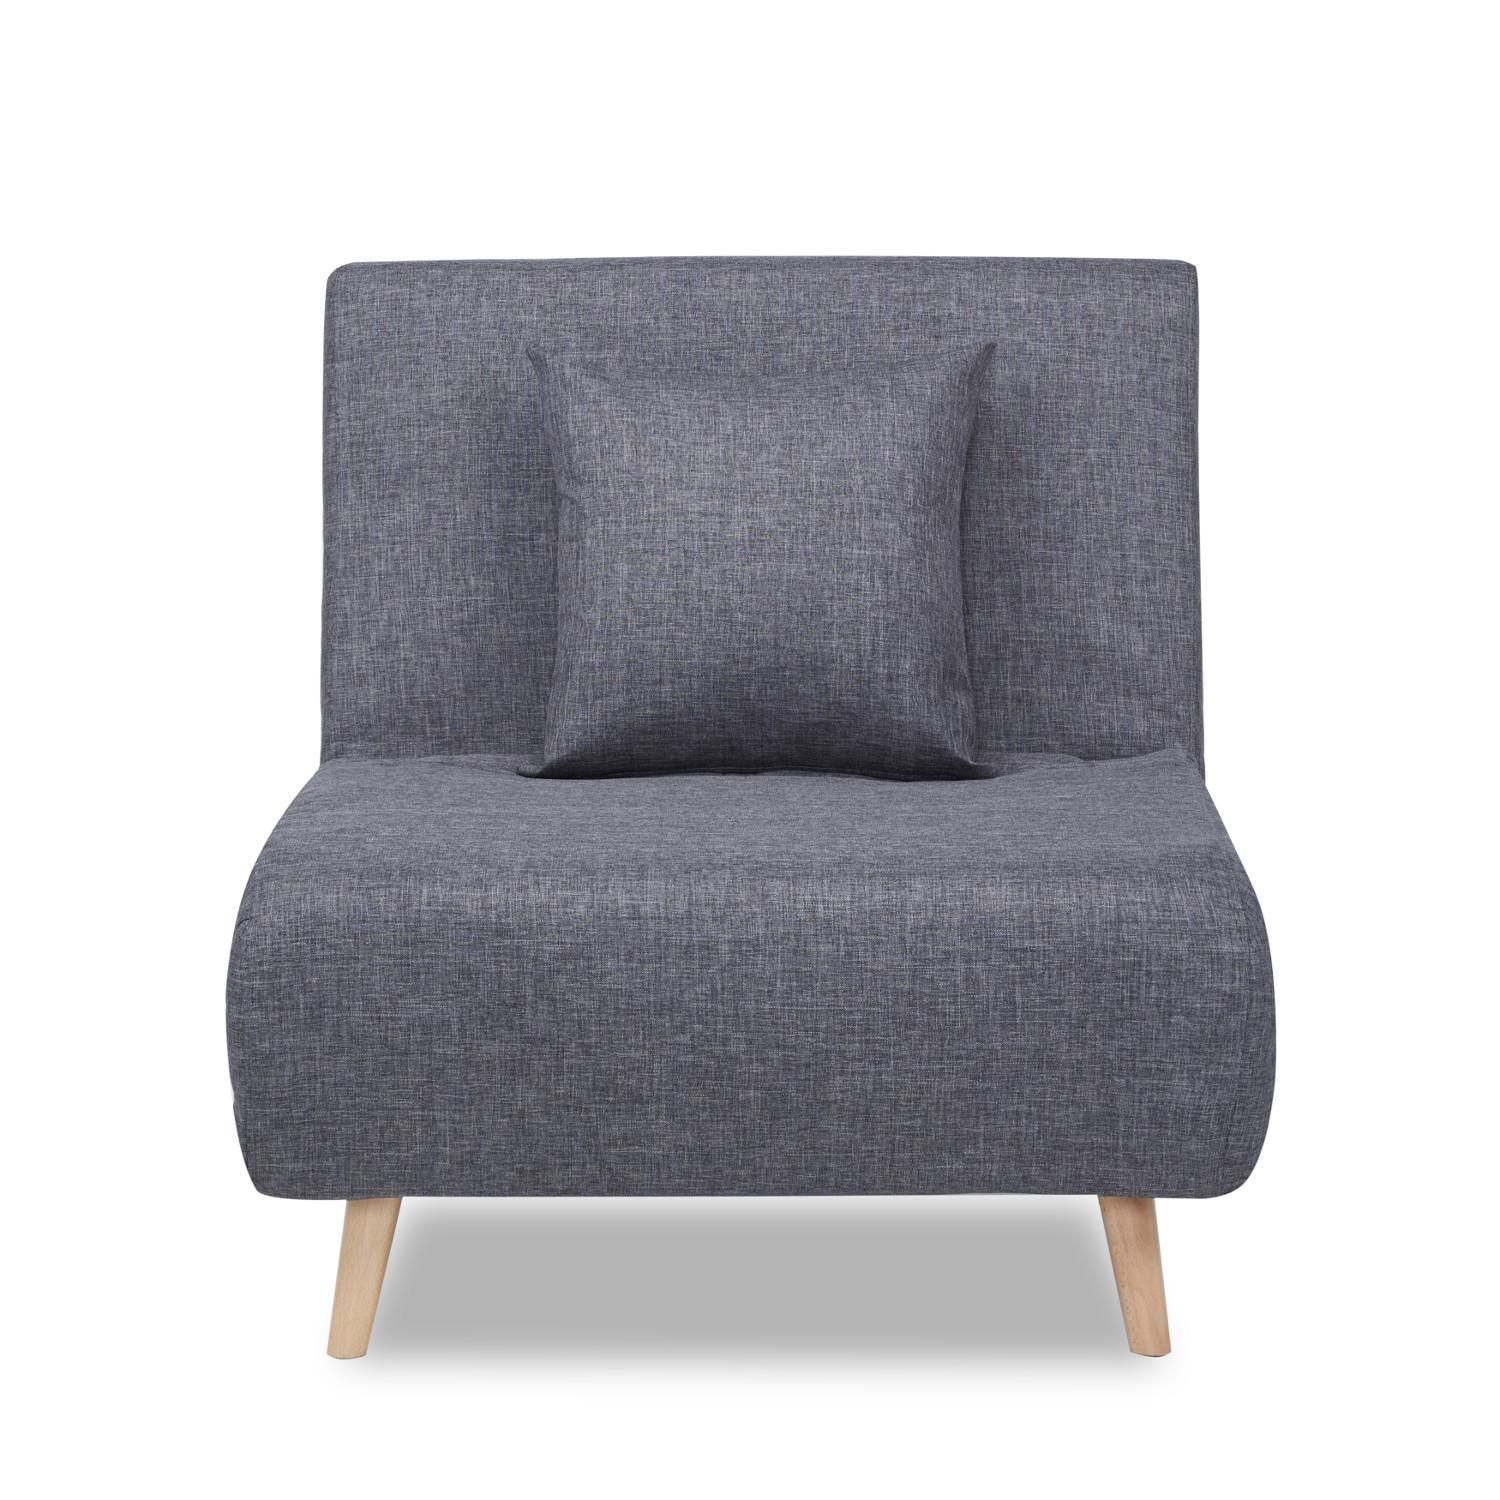 Macy Beach Fabric Sofa Bed In 2020 Chair Chair Upholstery